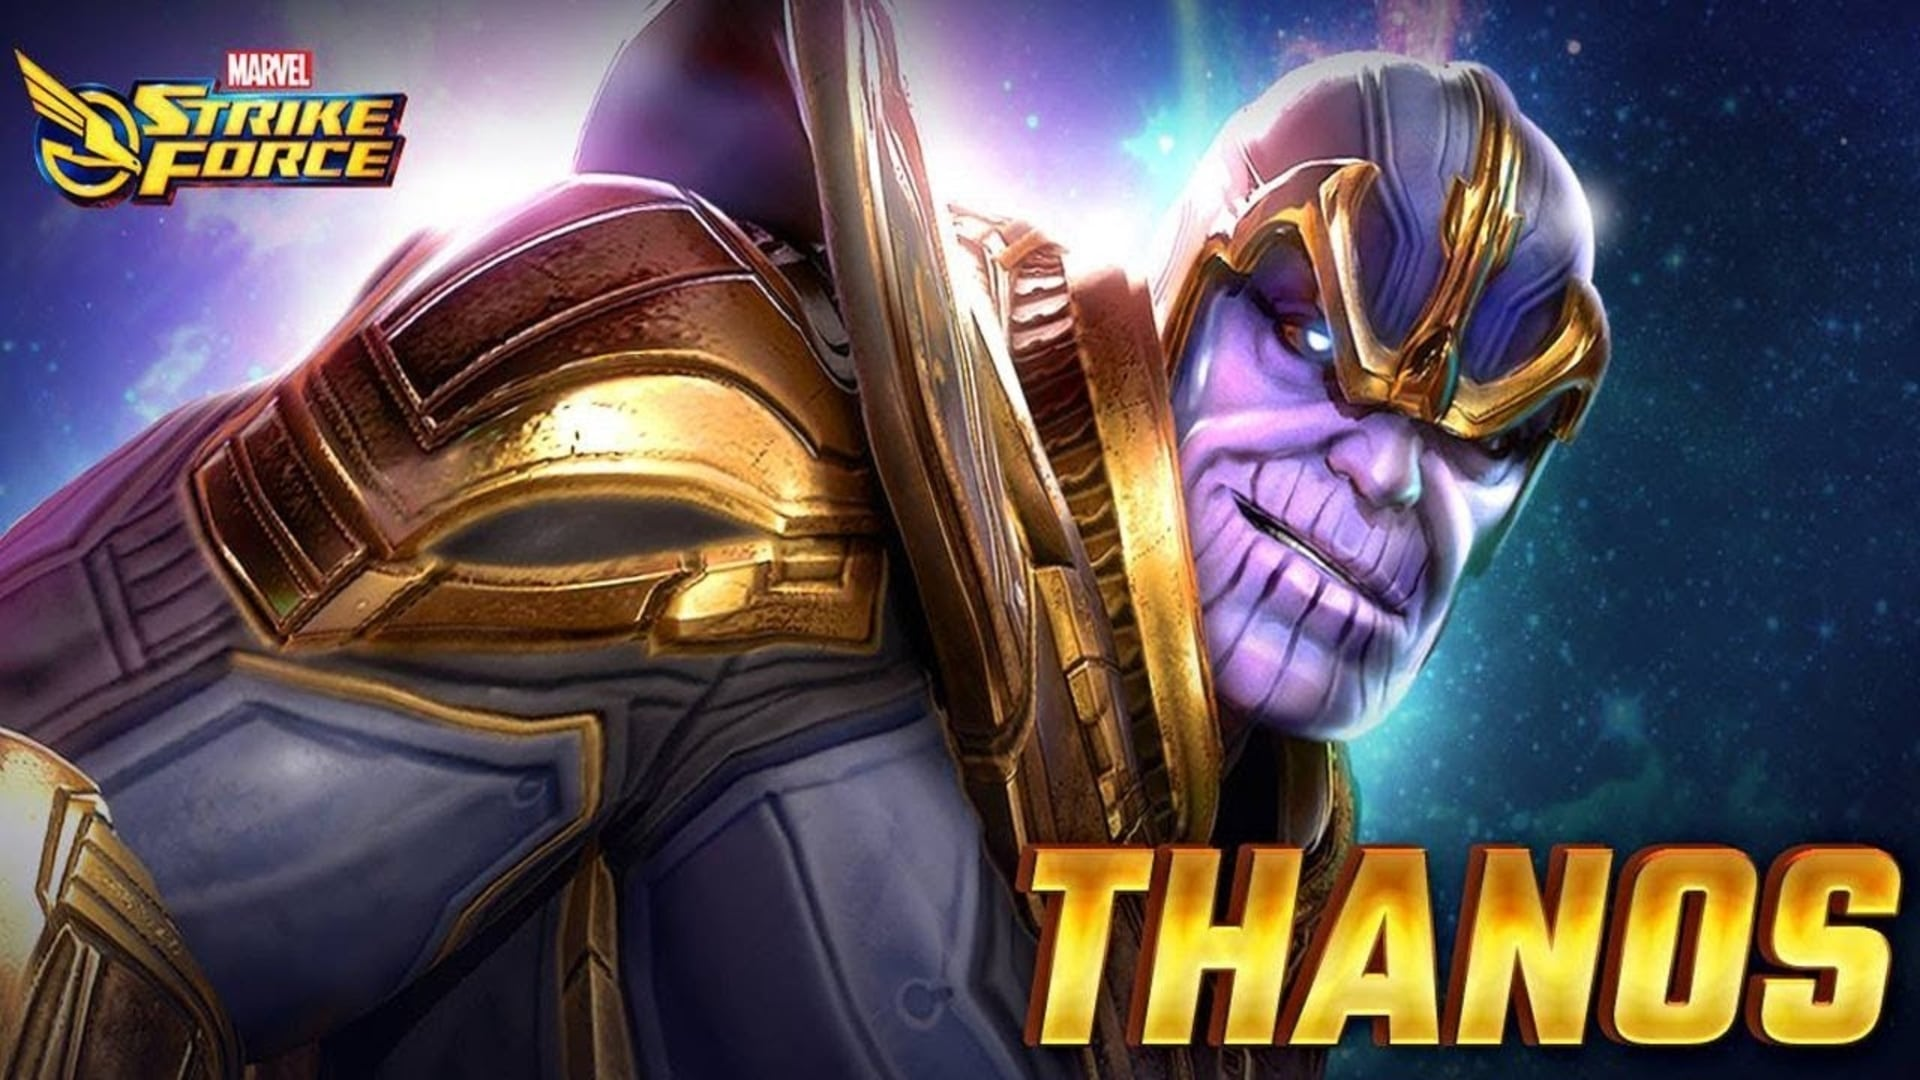 Thanos and his black order will include different objectives